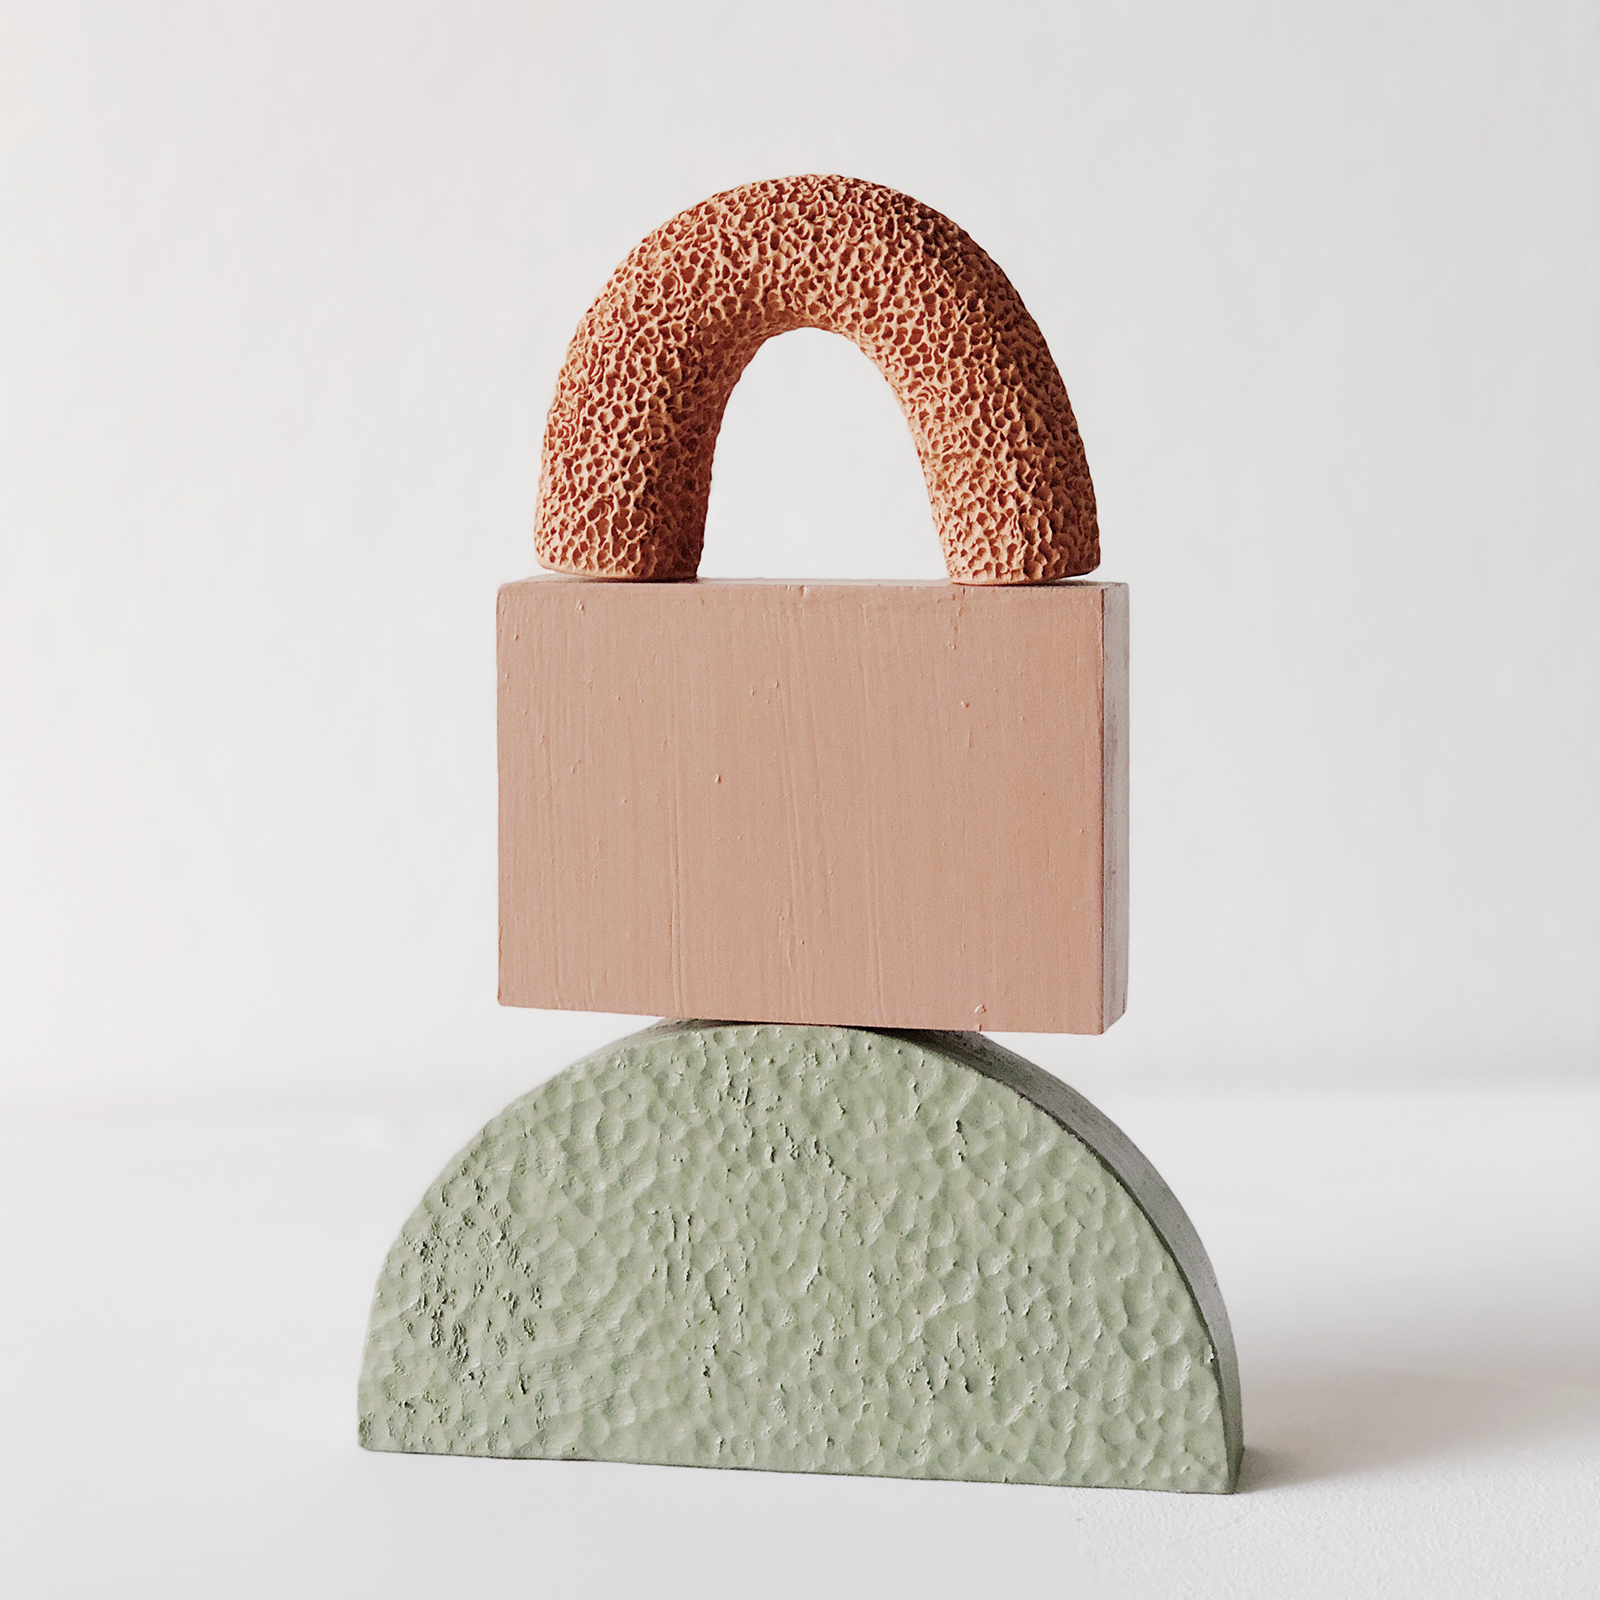 Small Space Sculpture In Terracotta And Timber By Hearth Collective (alichia Van Rhijn) 03